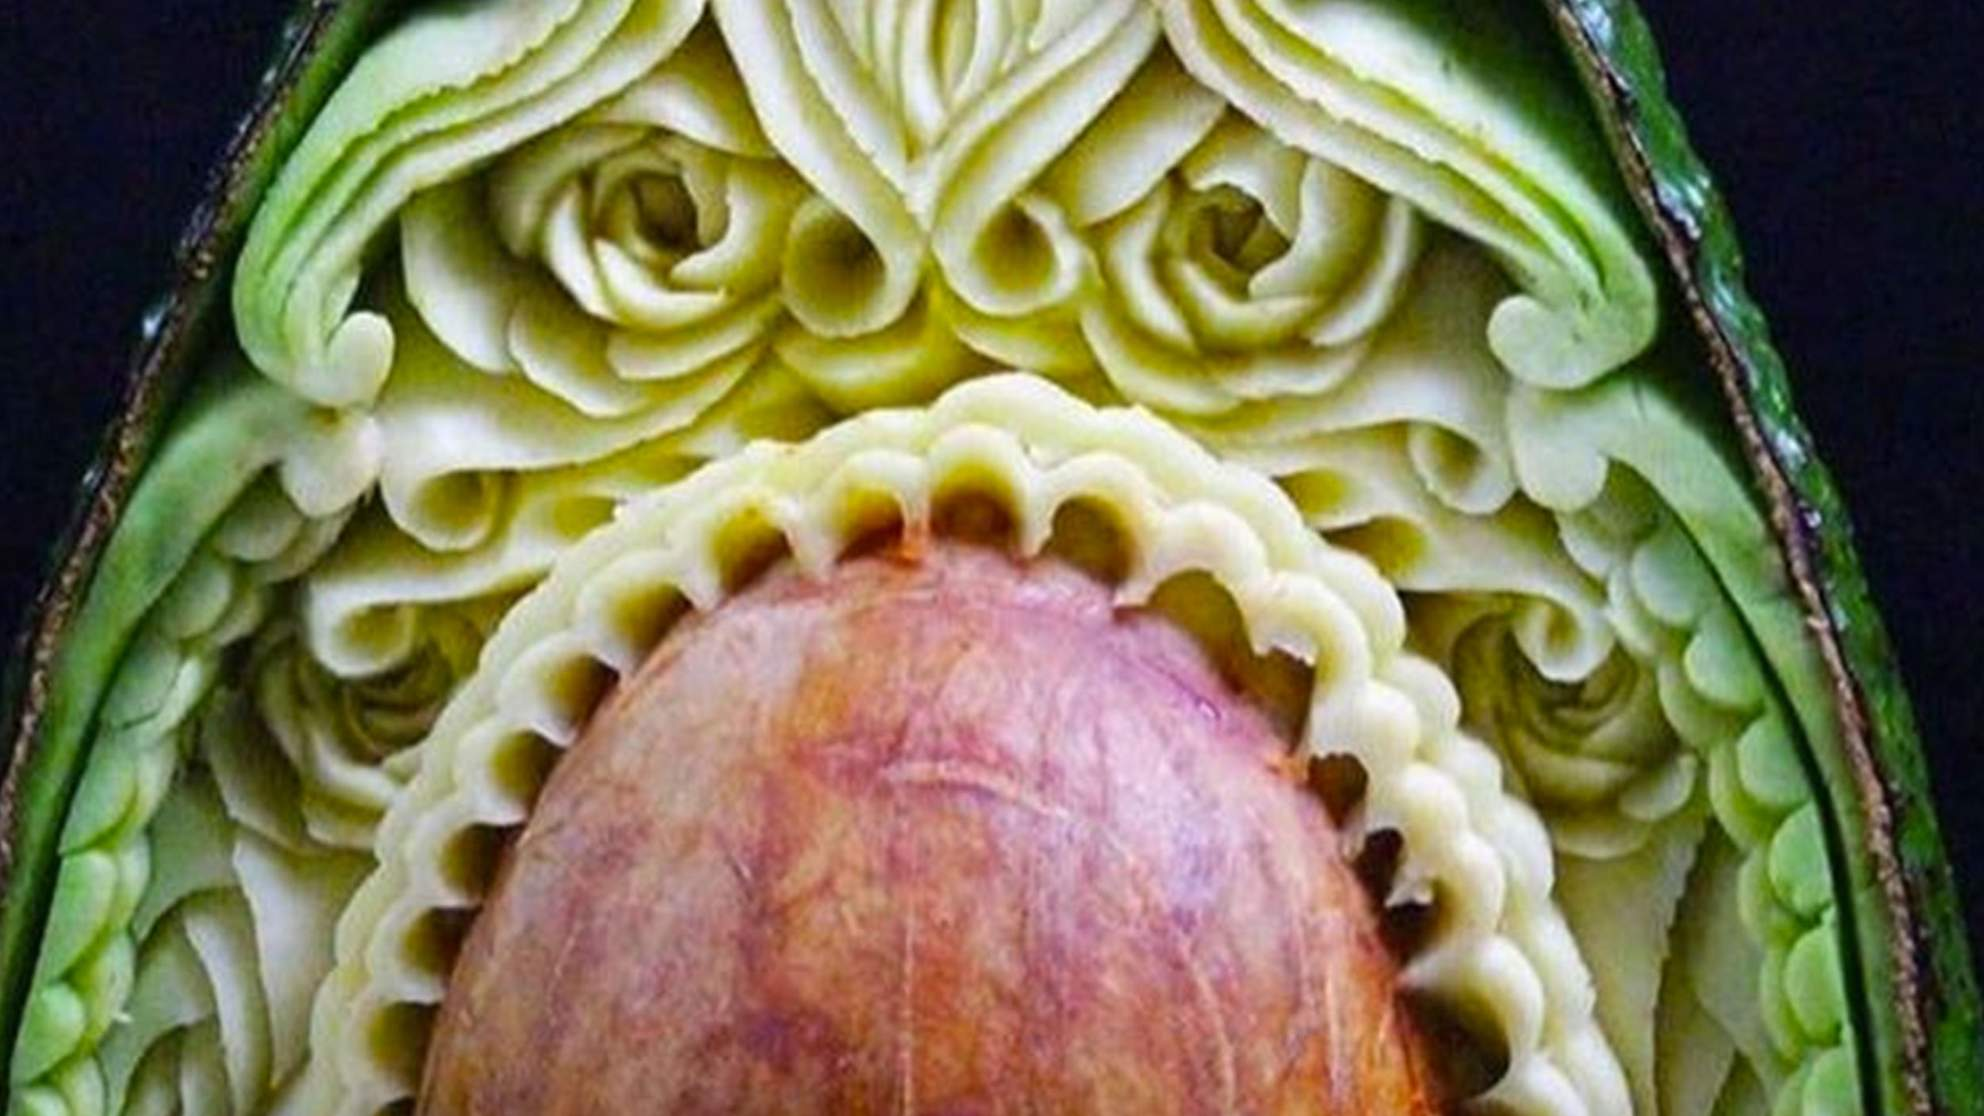 This Avocado Art Is Surprisingly Captivating